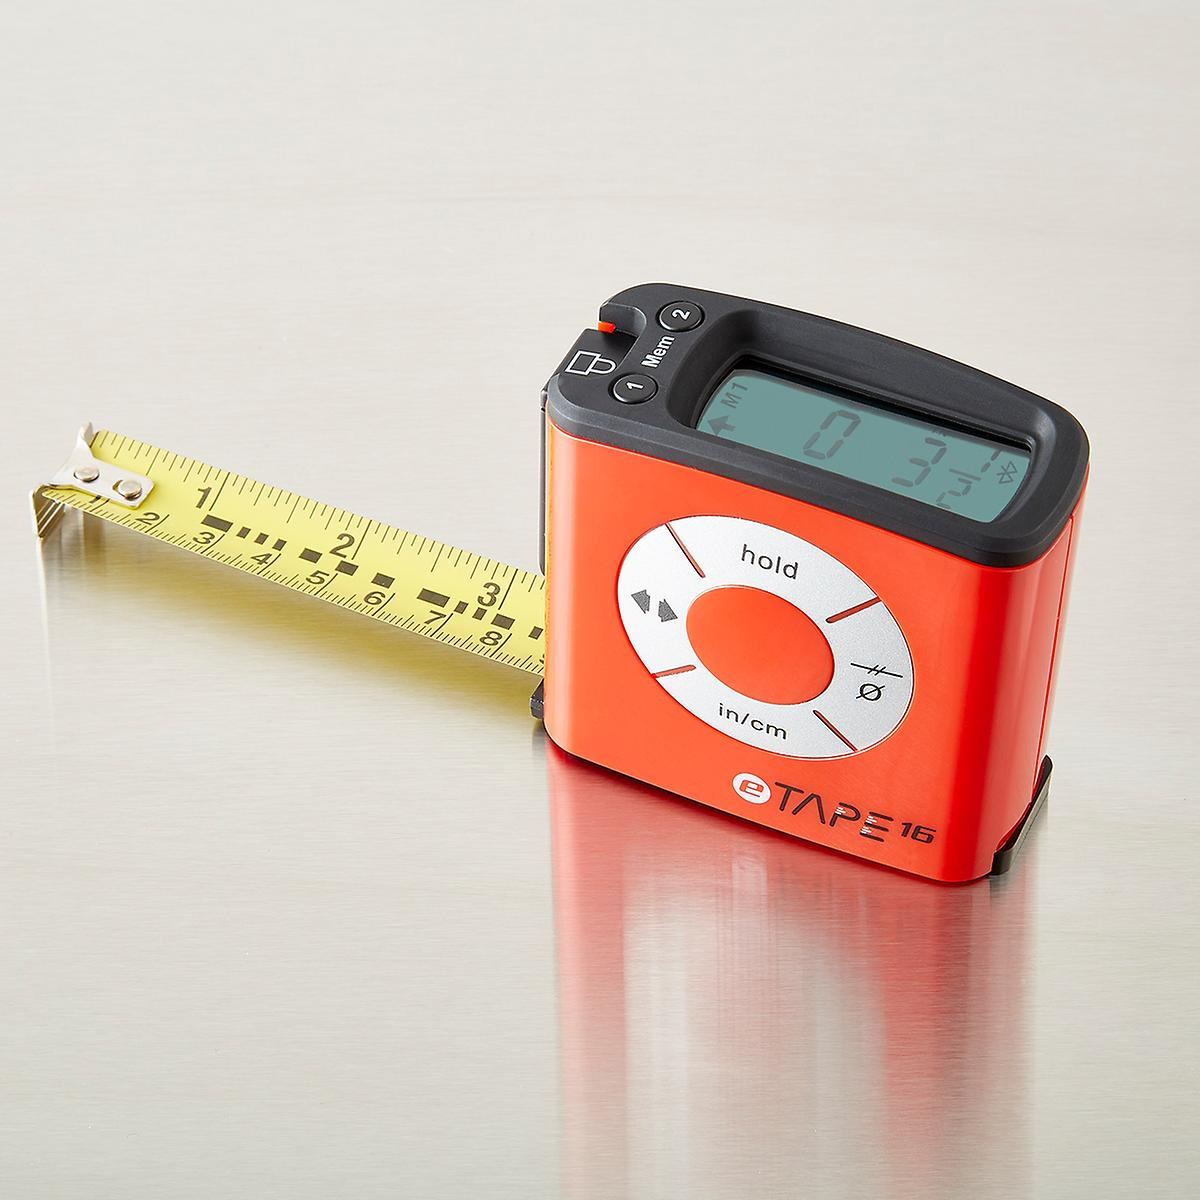 16' eTAPE16 Digital Tape Measure